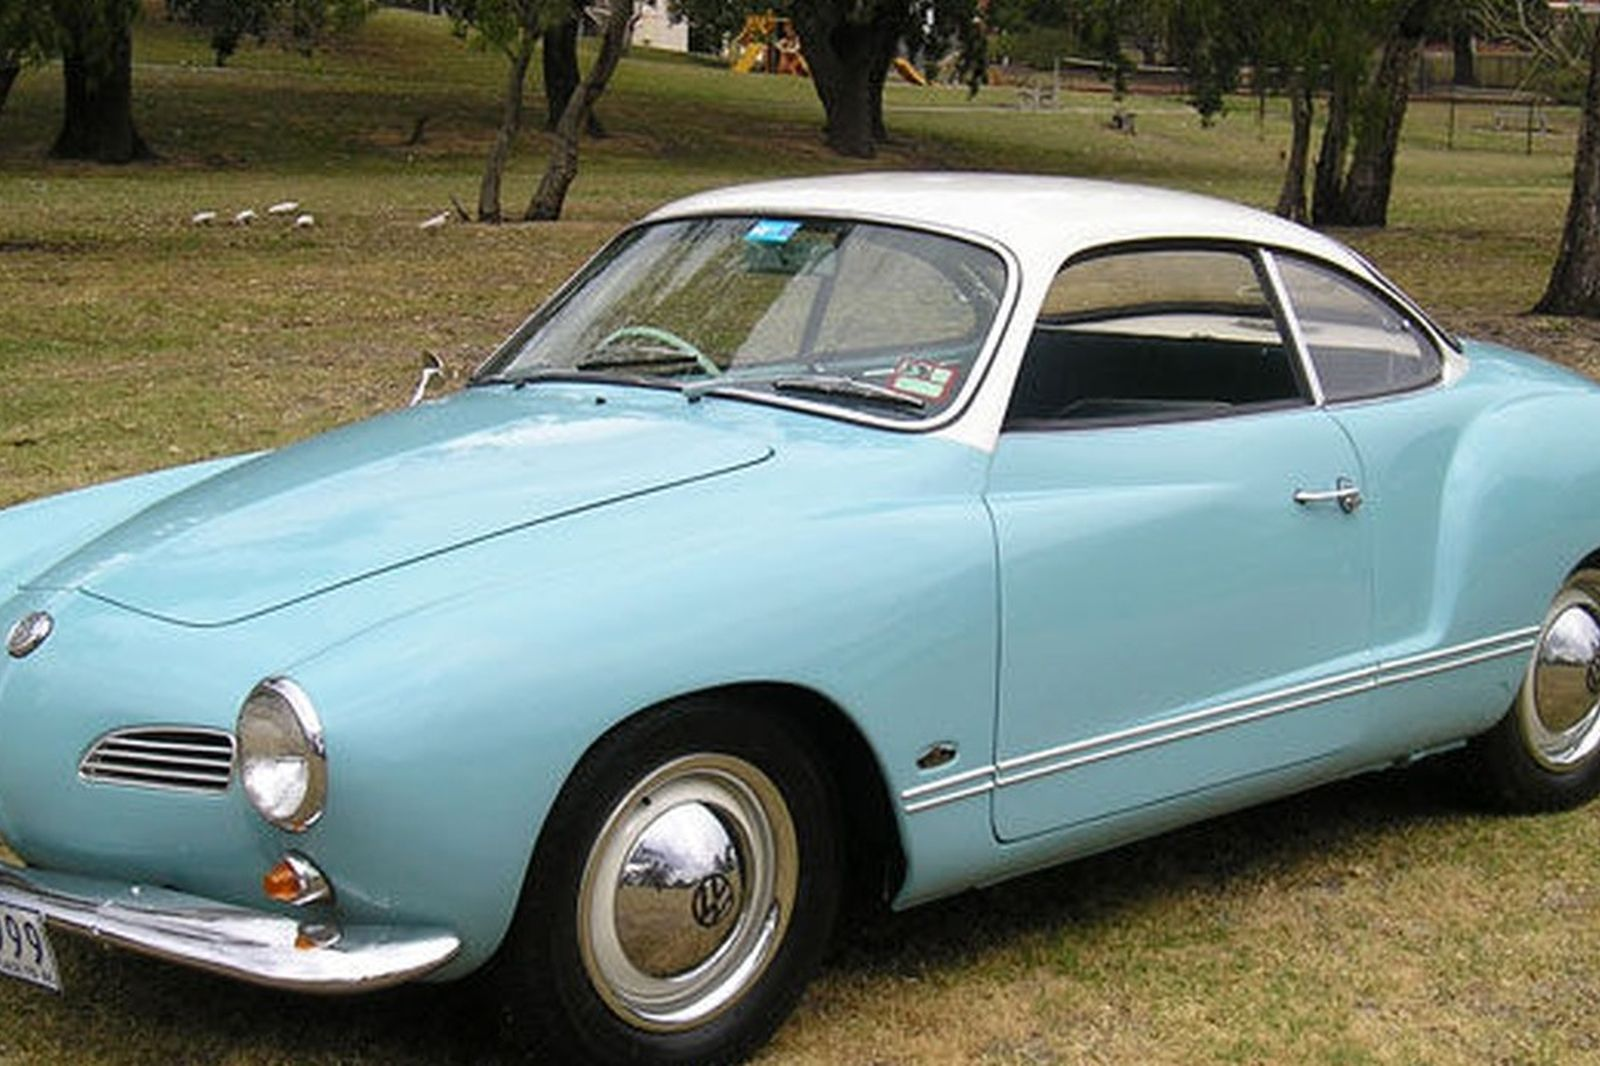 Sold: Volkswagen Karmann Ghia Coupe Auctions - Lot 20 ...